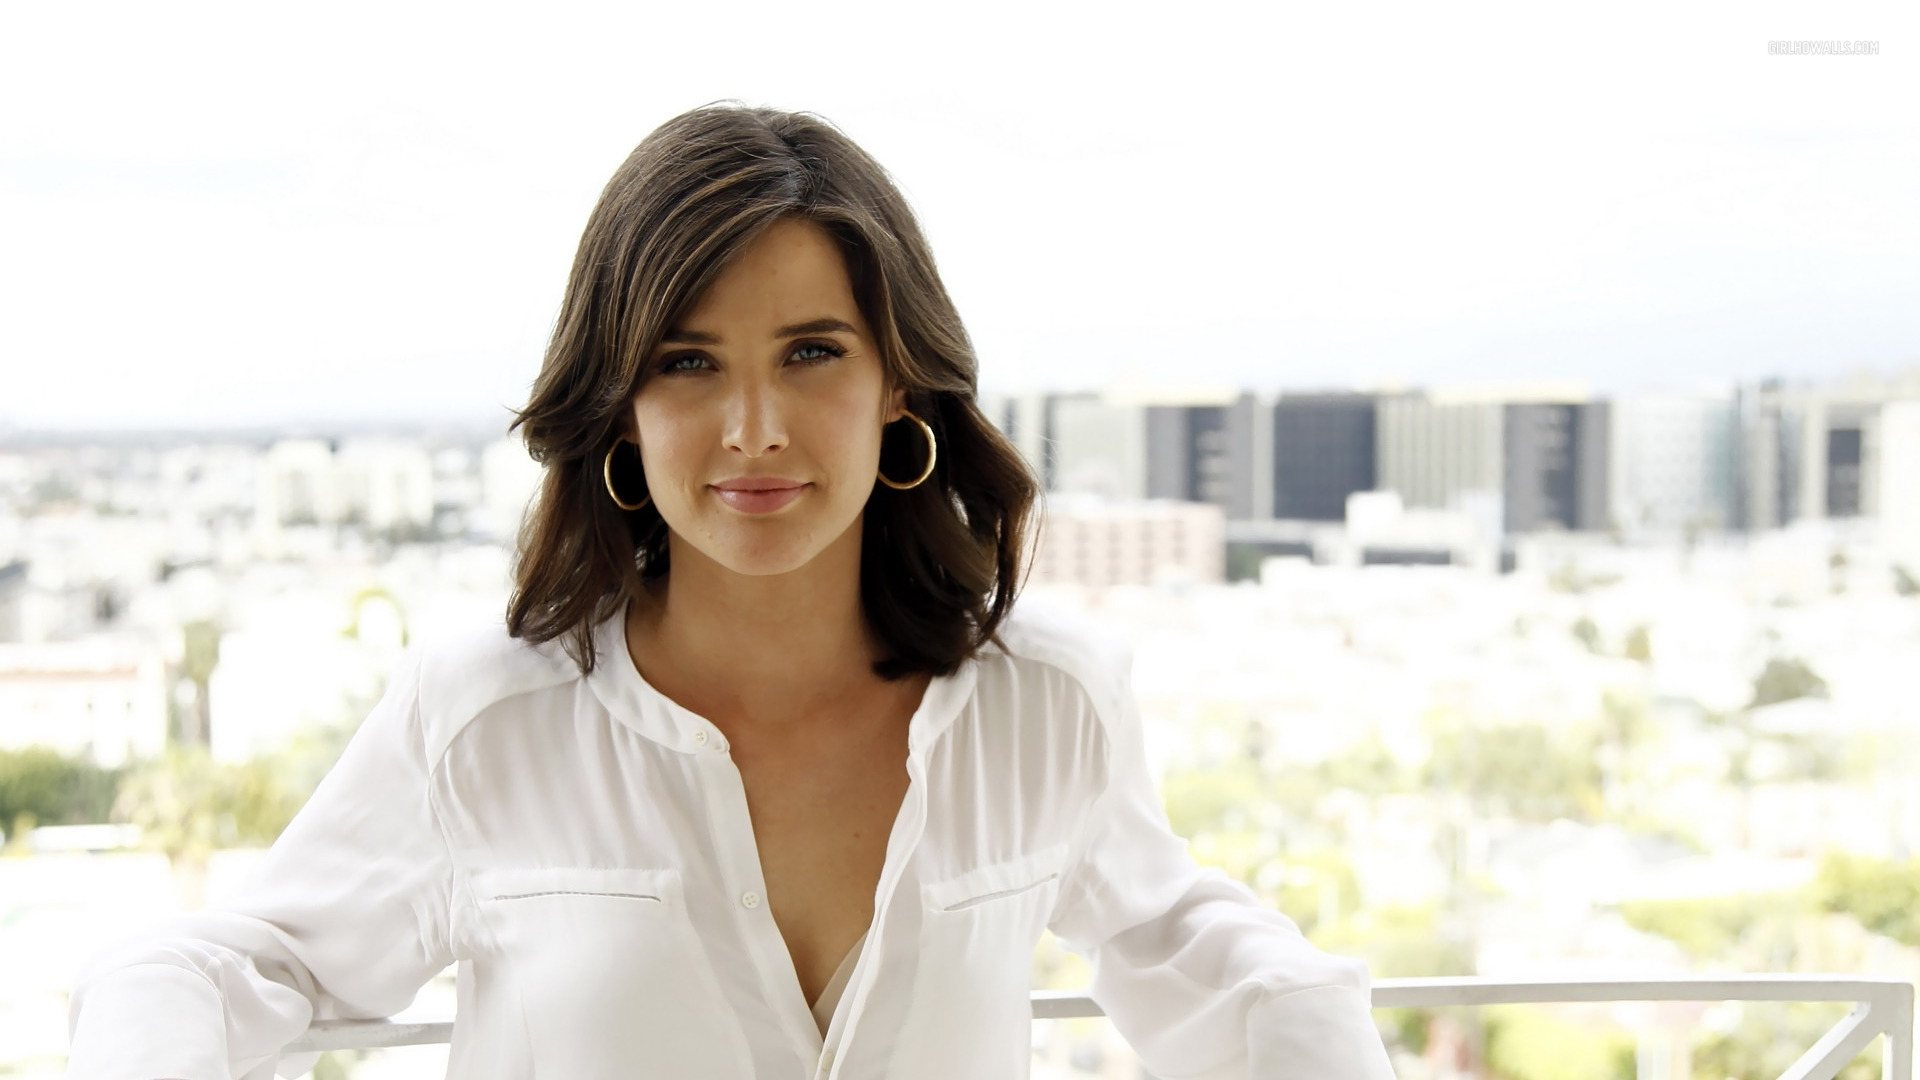 cobie smulders in white shirt 1920x1080